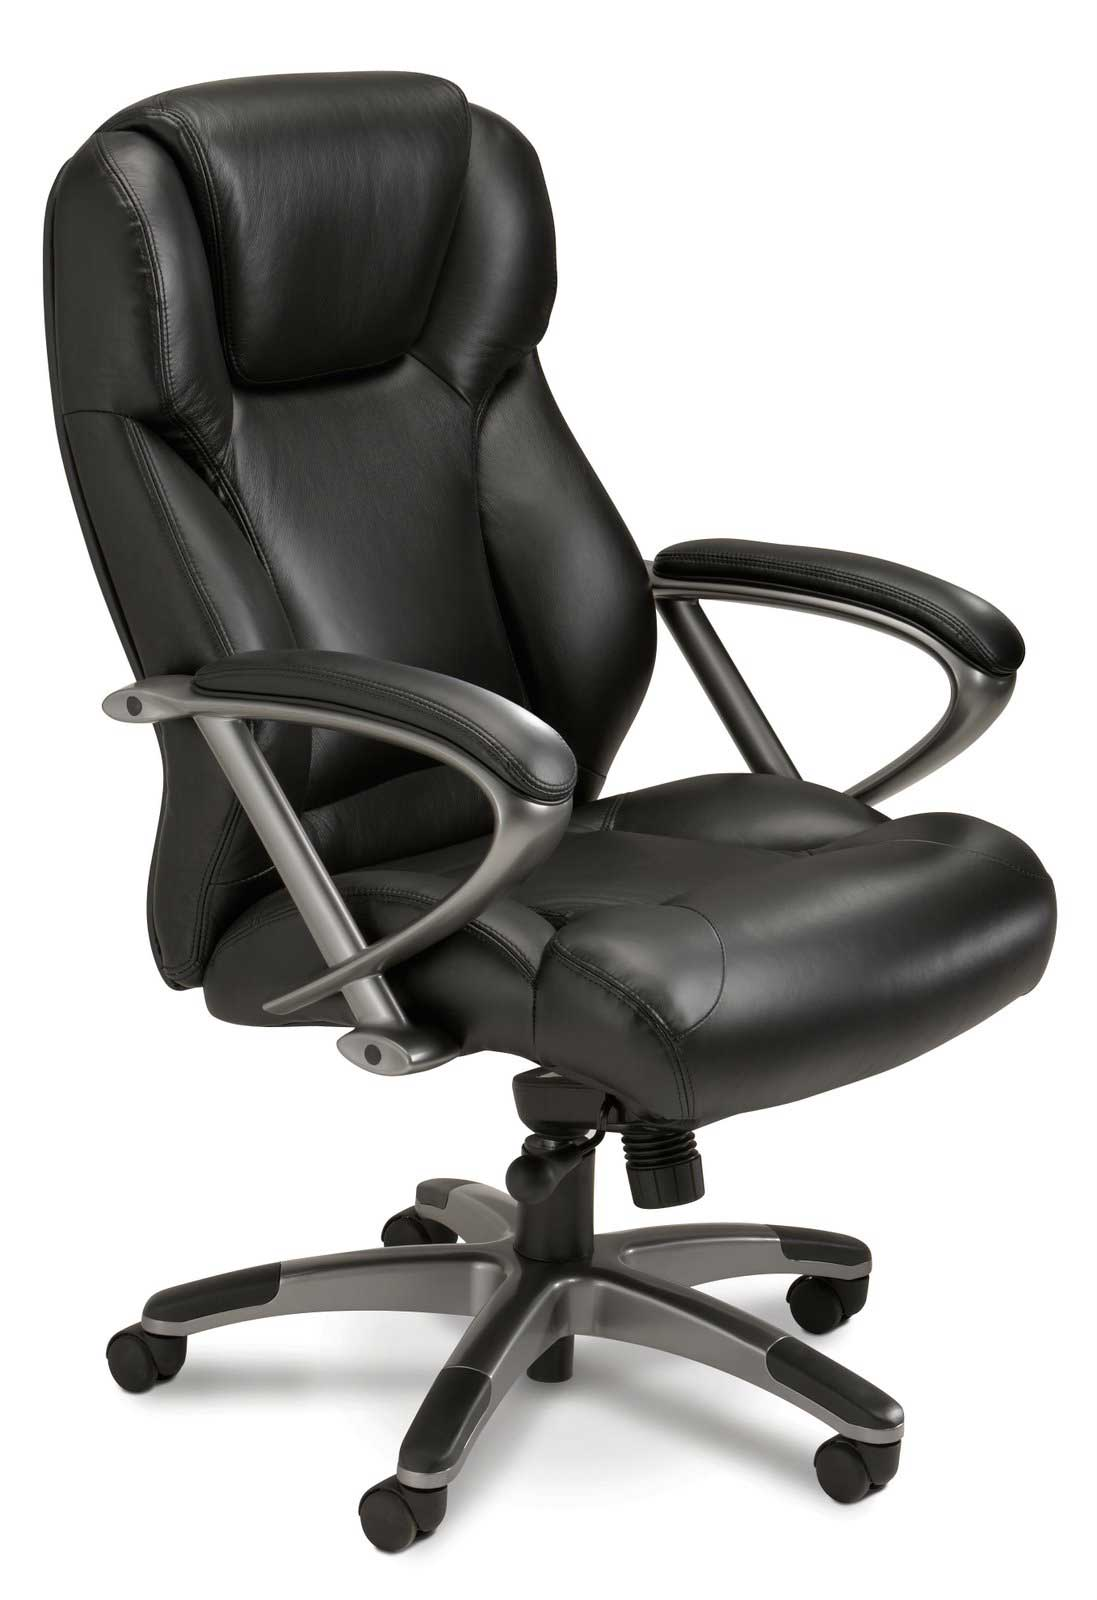 Ultimo black luxury office chairs series